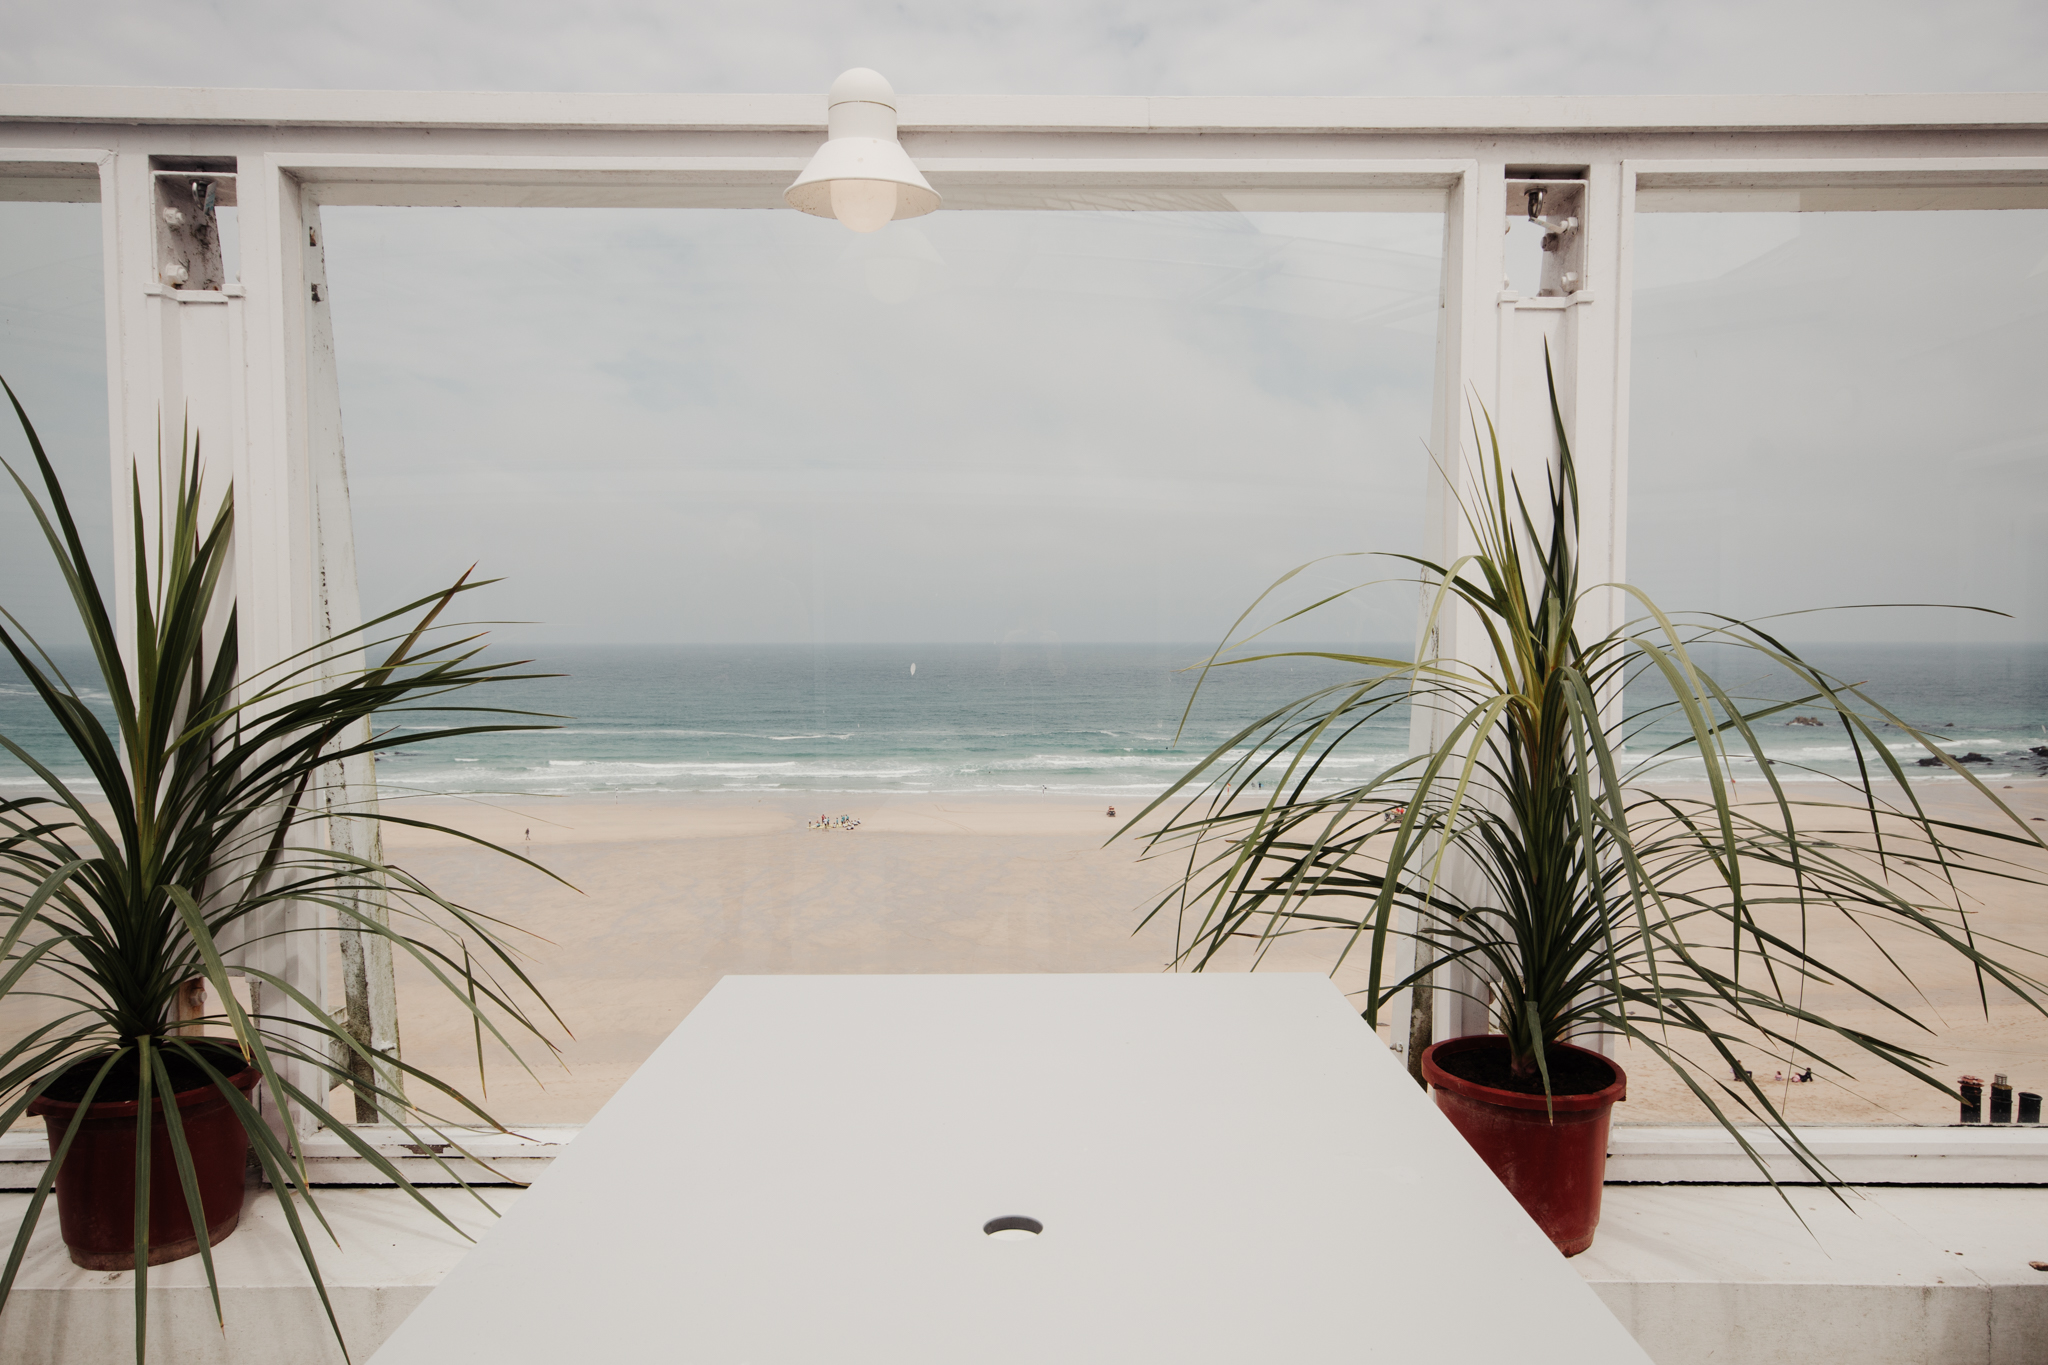 St Ives, Cornwall | Ciao Fabello